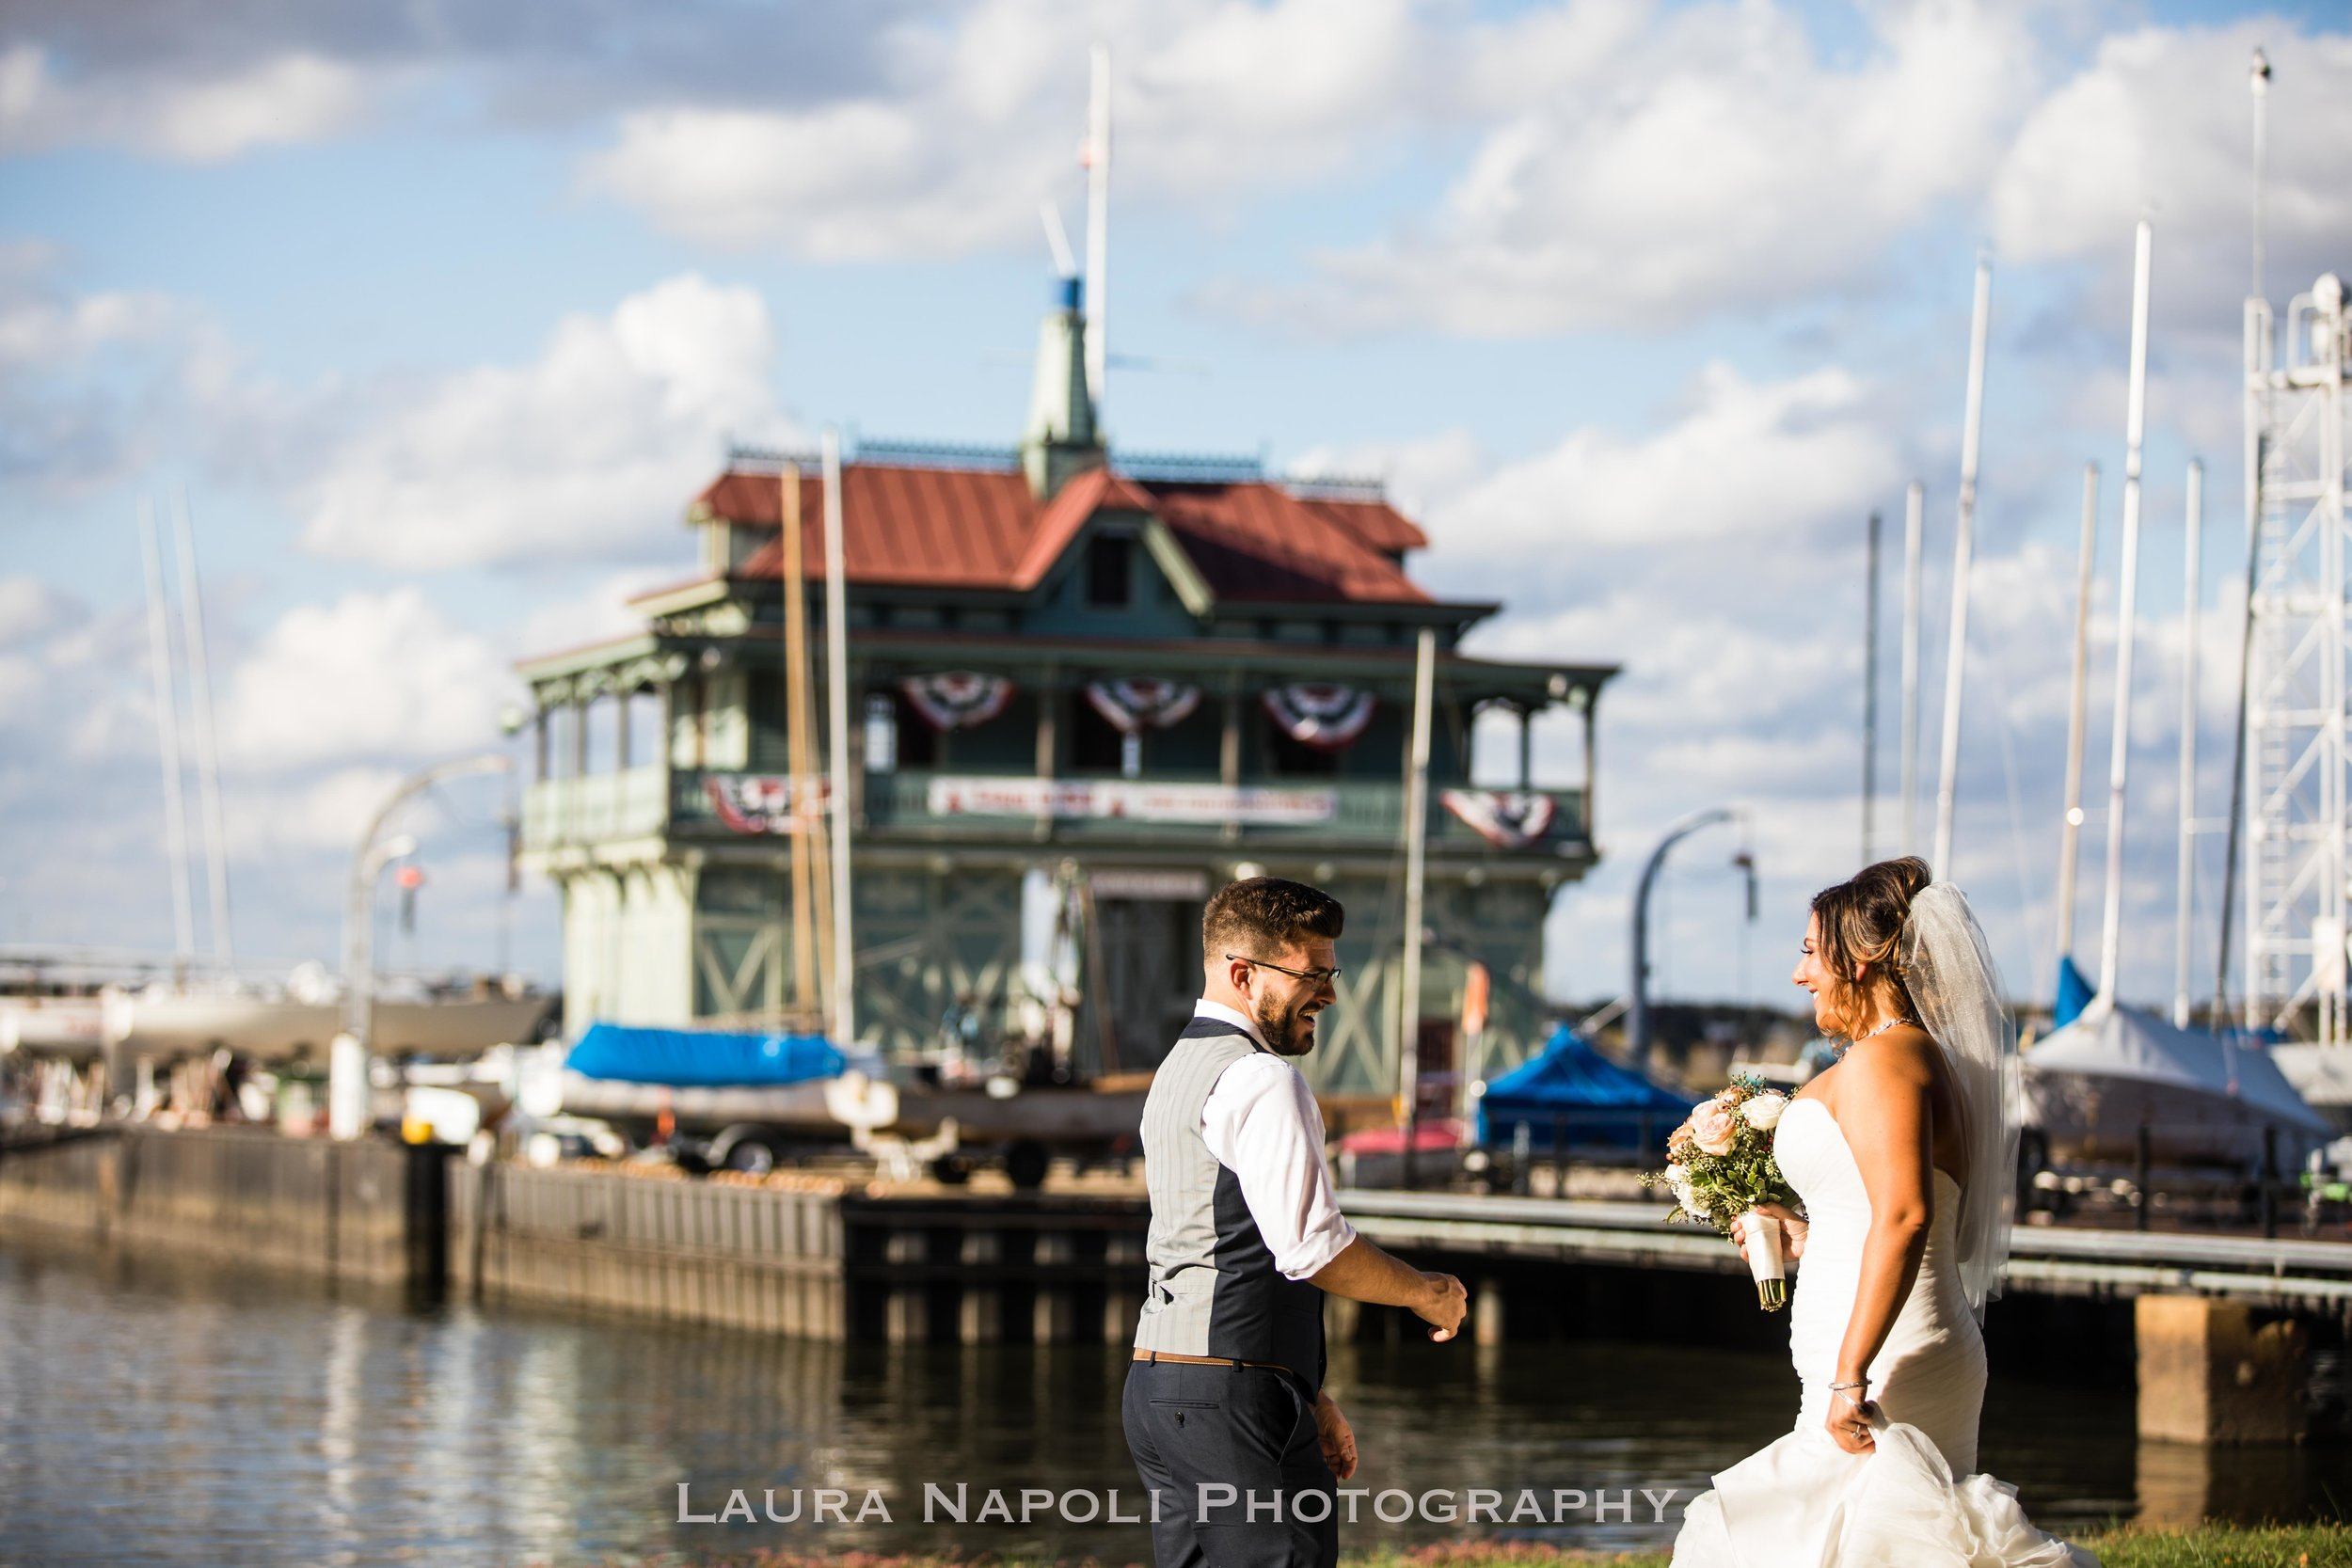 CafeMadisonWeddingRiversideNJweddingvenuesouthjerseyweddingphotographer-11.jpg